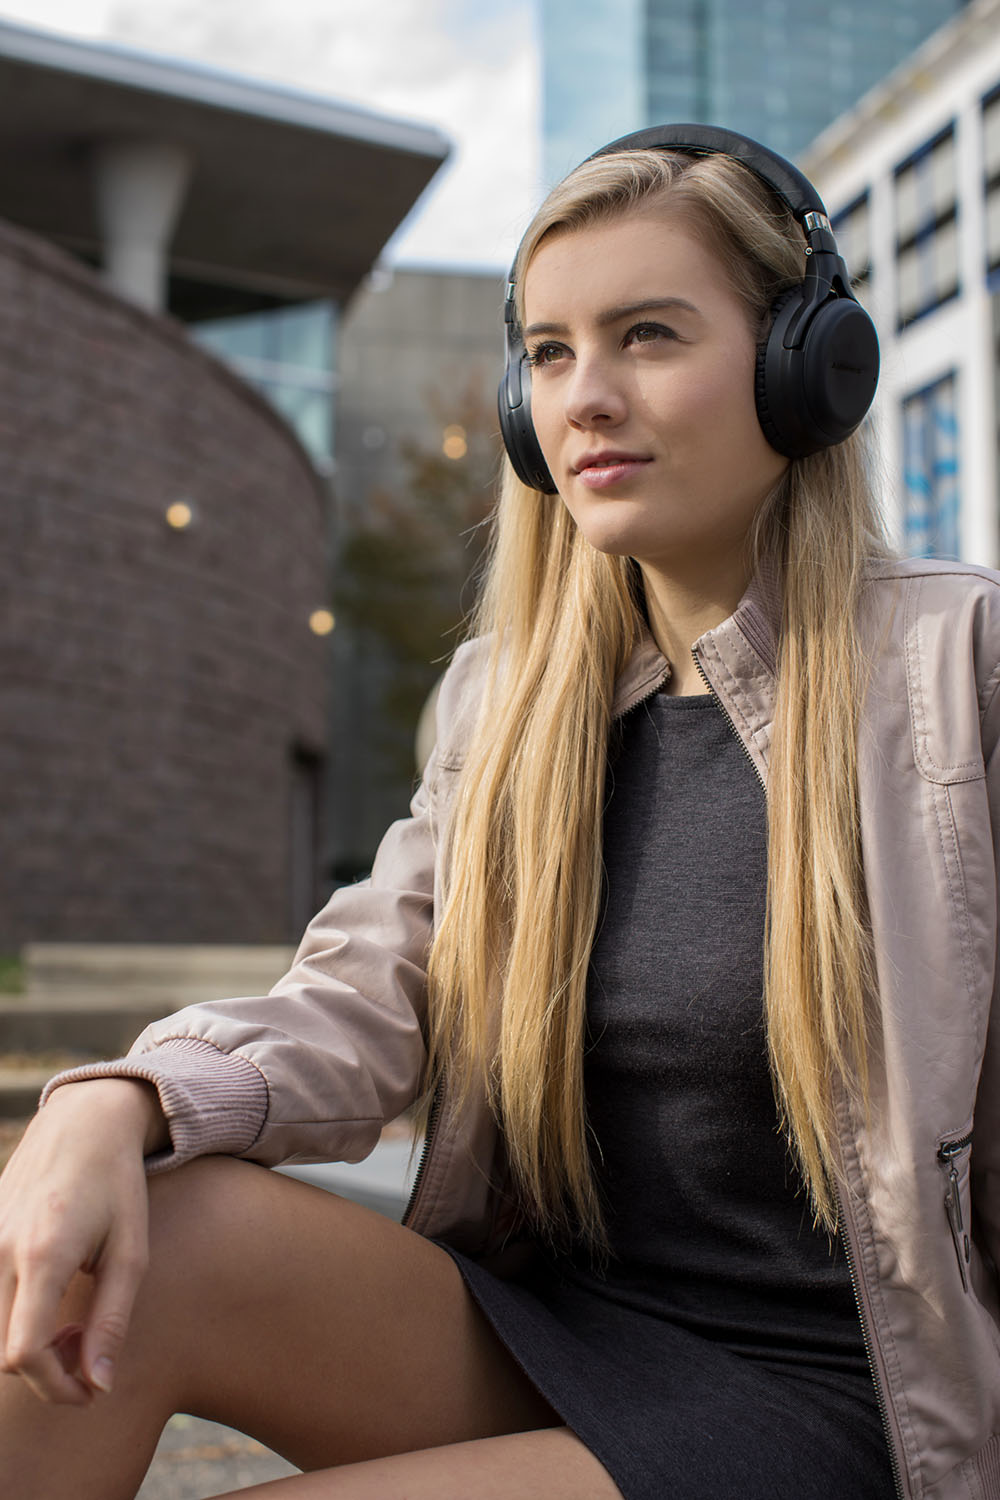 headphones-model-uptown.jpg